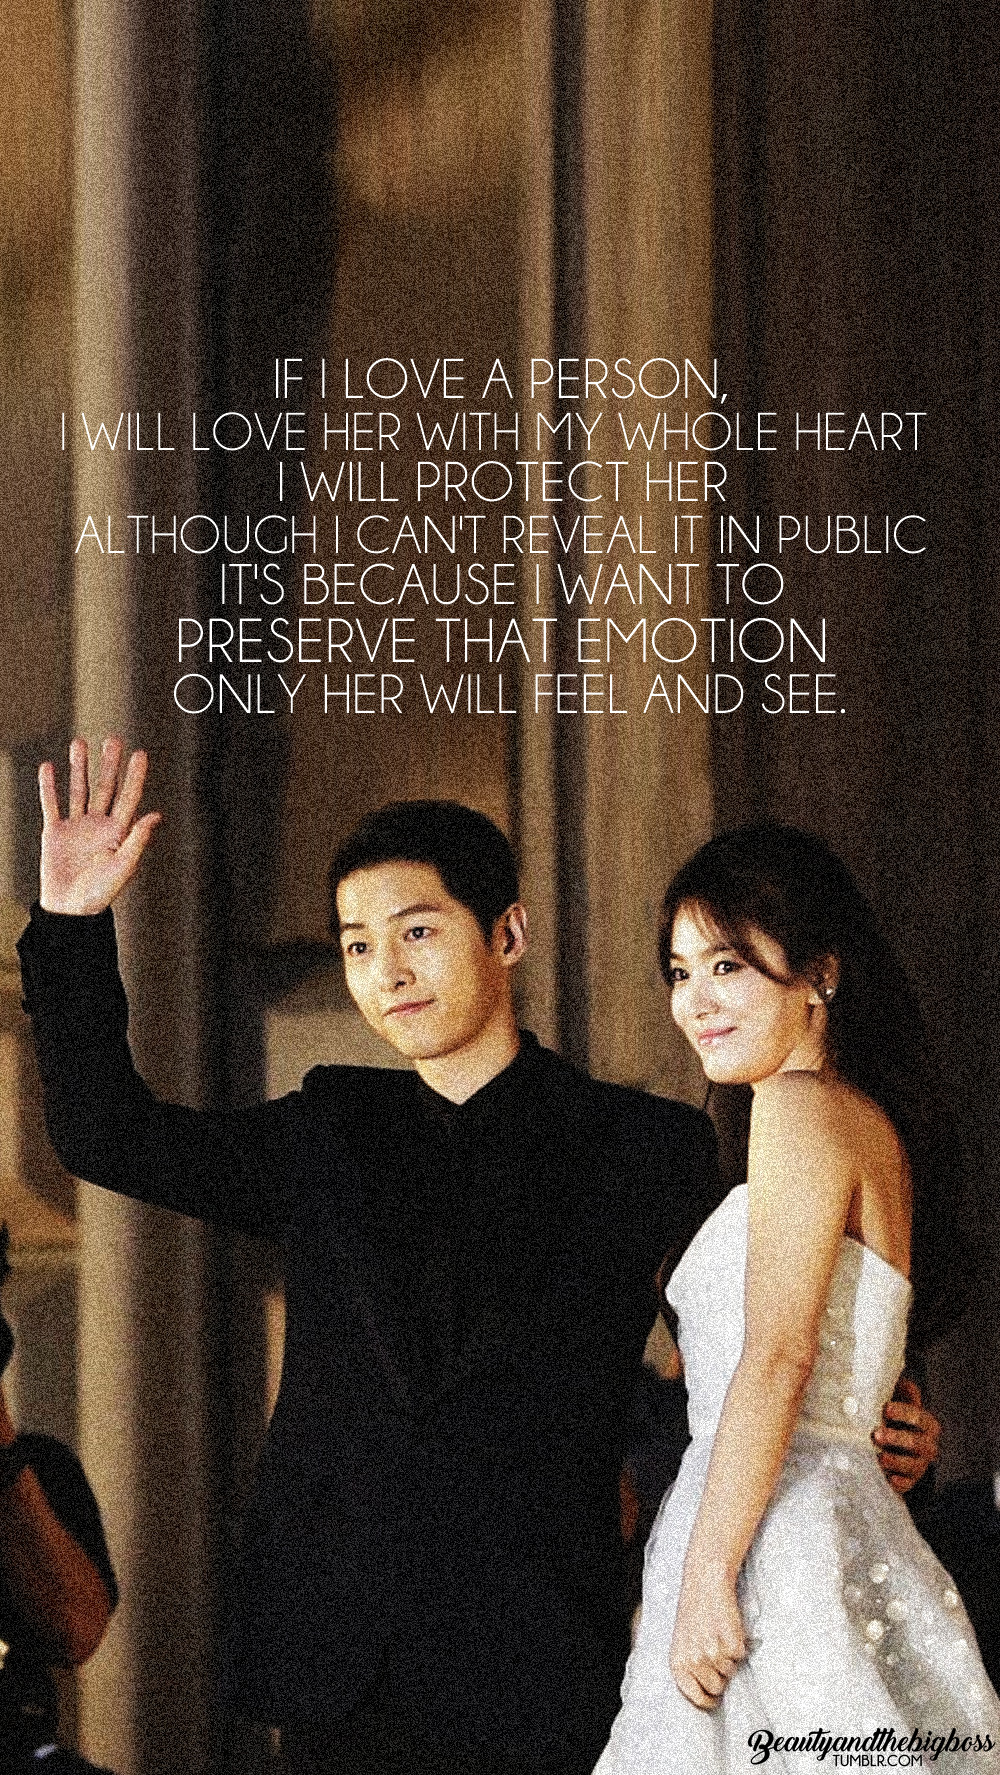 Song Song Couple Soompi Forum : couple, soompi, forum, Official], Shippers', Paradise, Soompi, Forums